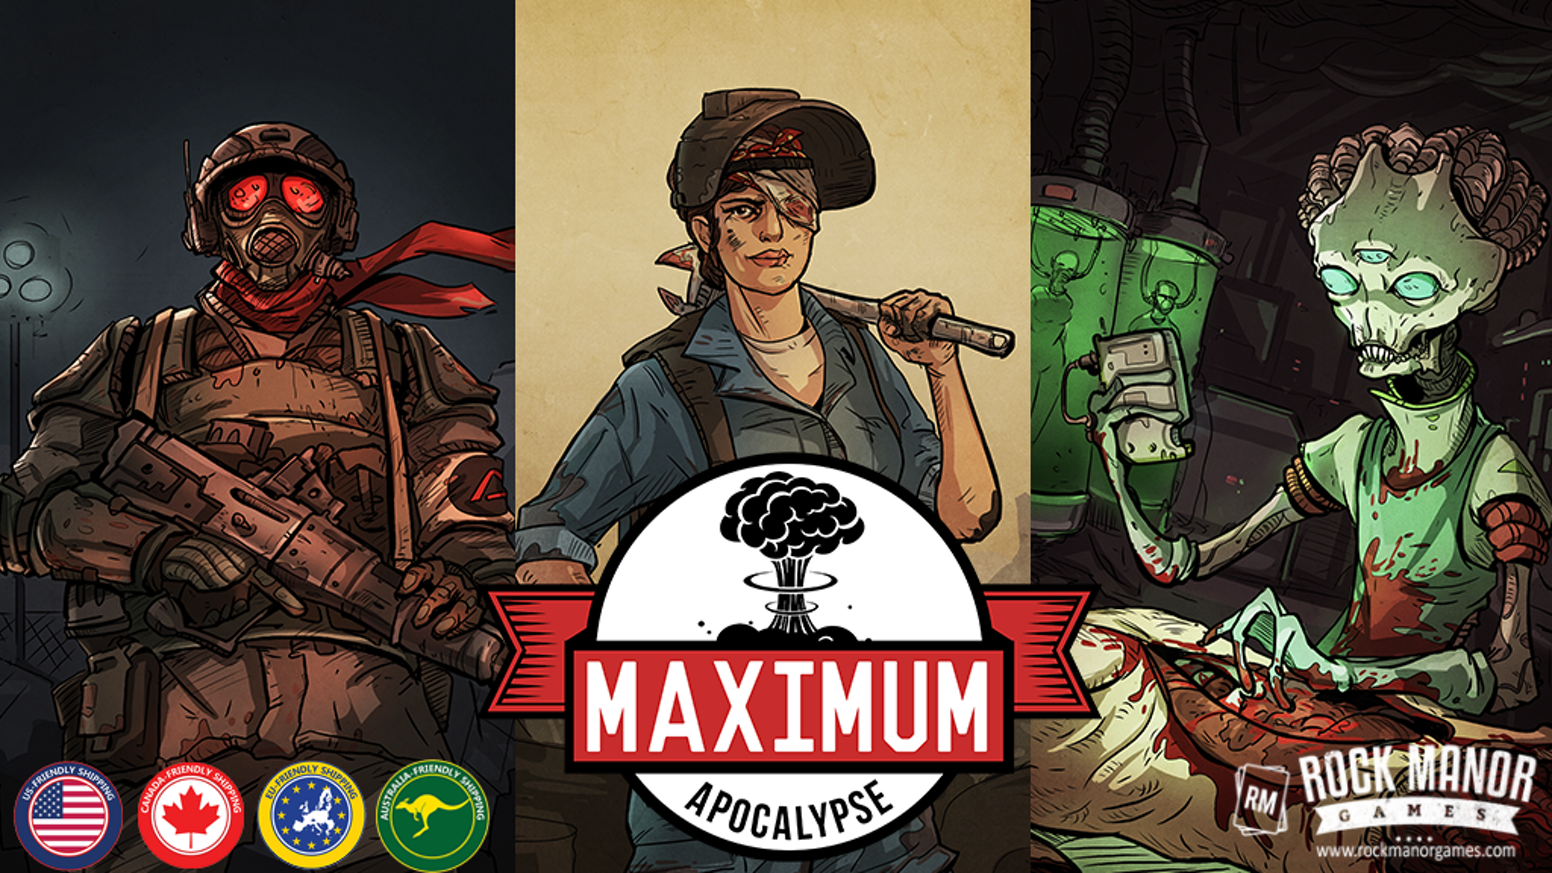 Survivors must explore, sneak, scavenge and kill to survive the apocalypse in this cooperative board game for 1-6 players.